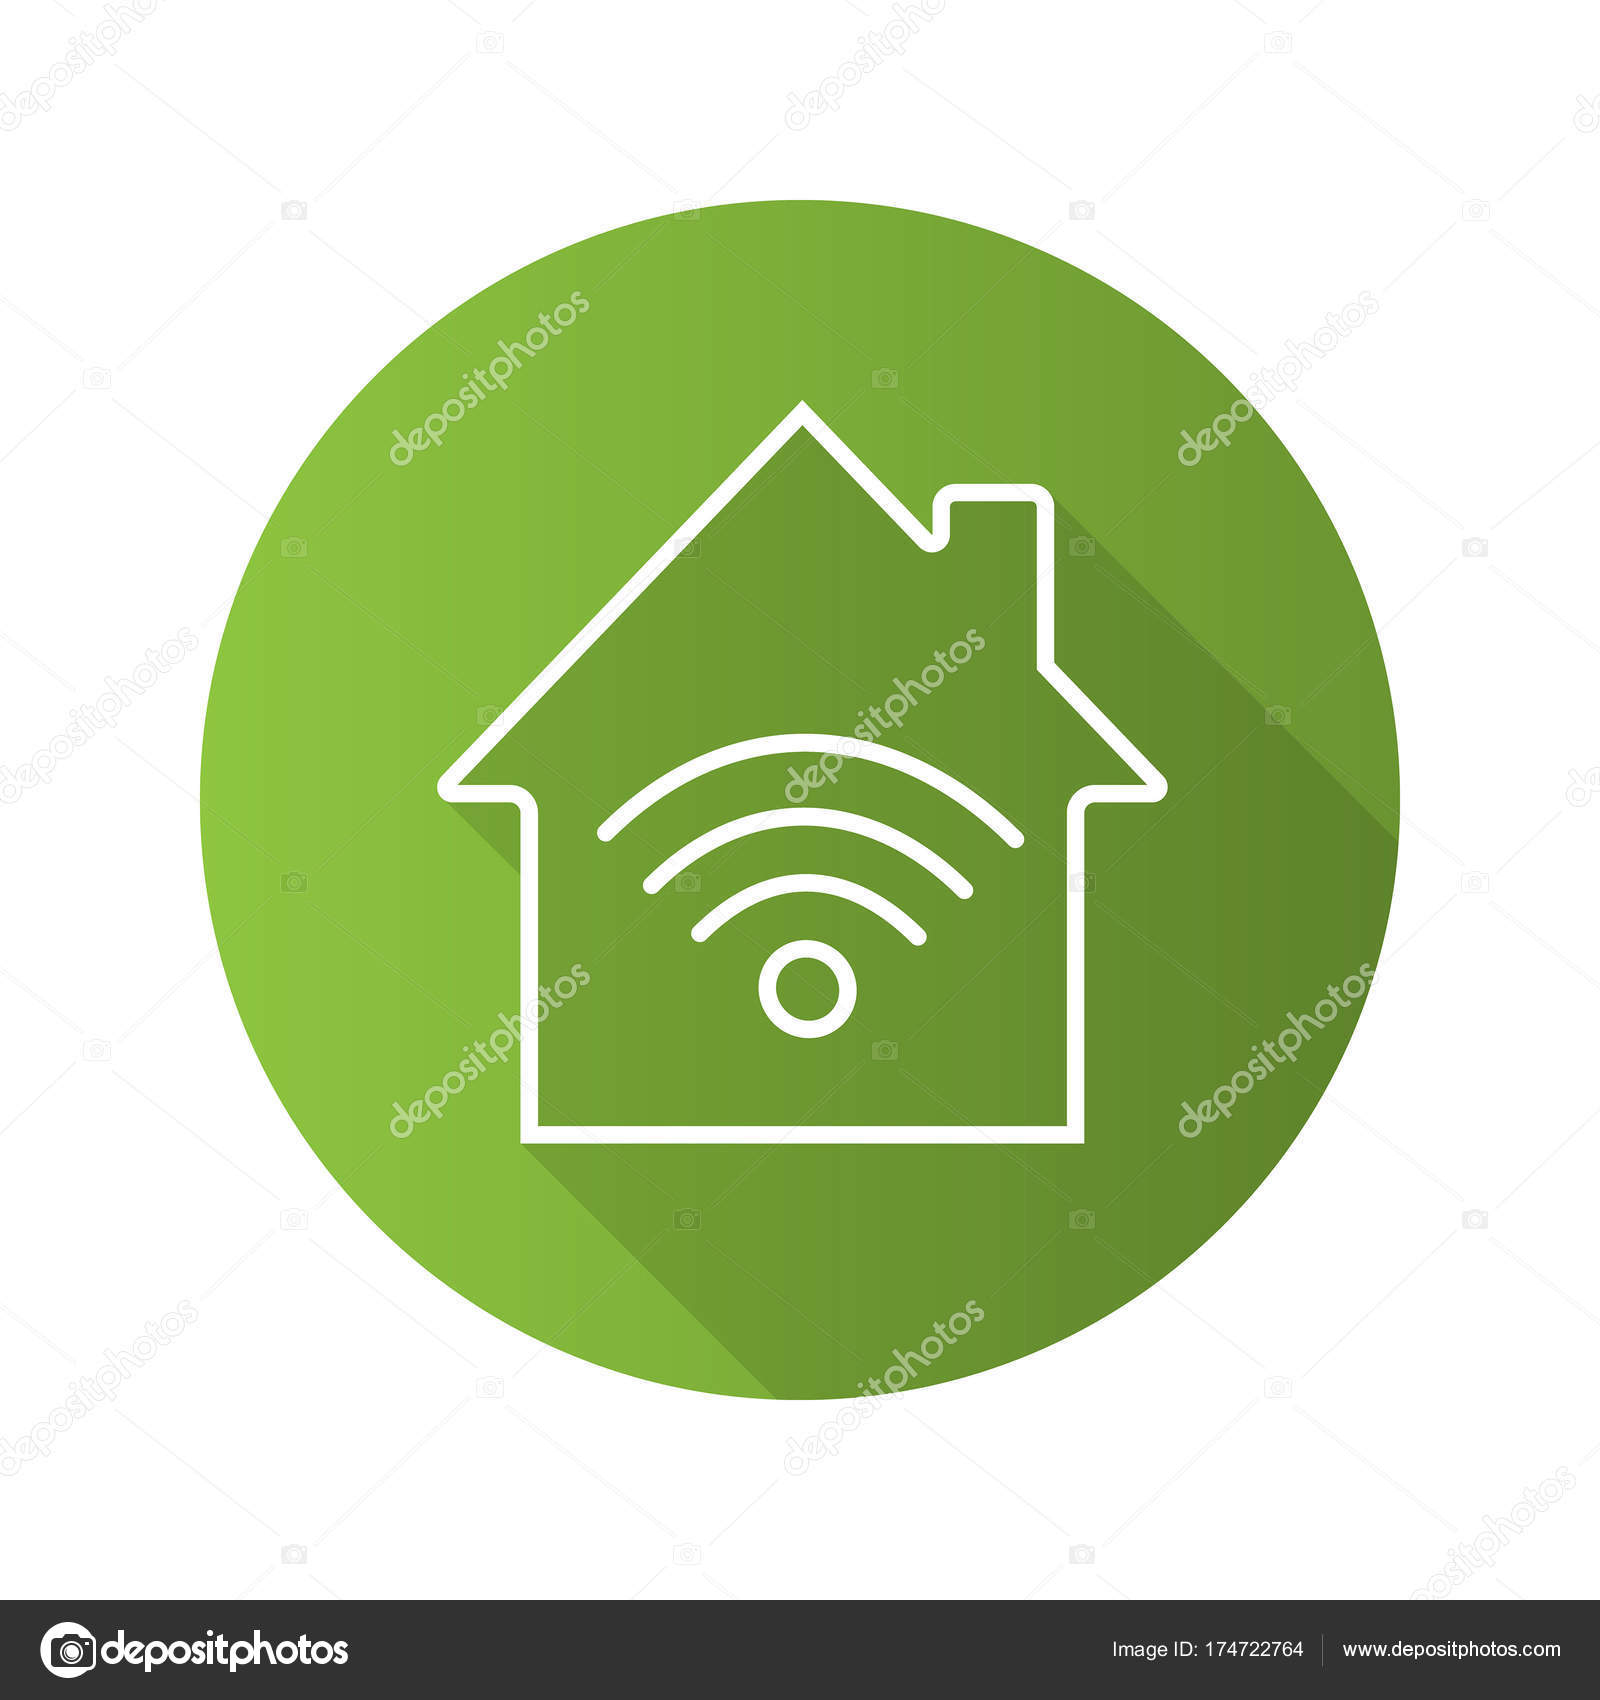 Home internet connection icon stock vector bsd 174722764 home internet connection icon stock vector buycottarizona Images